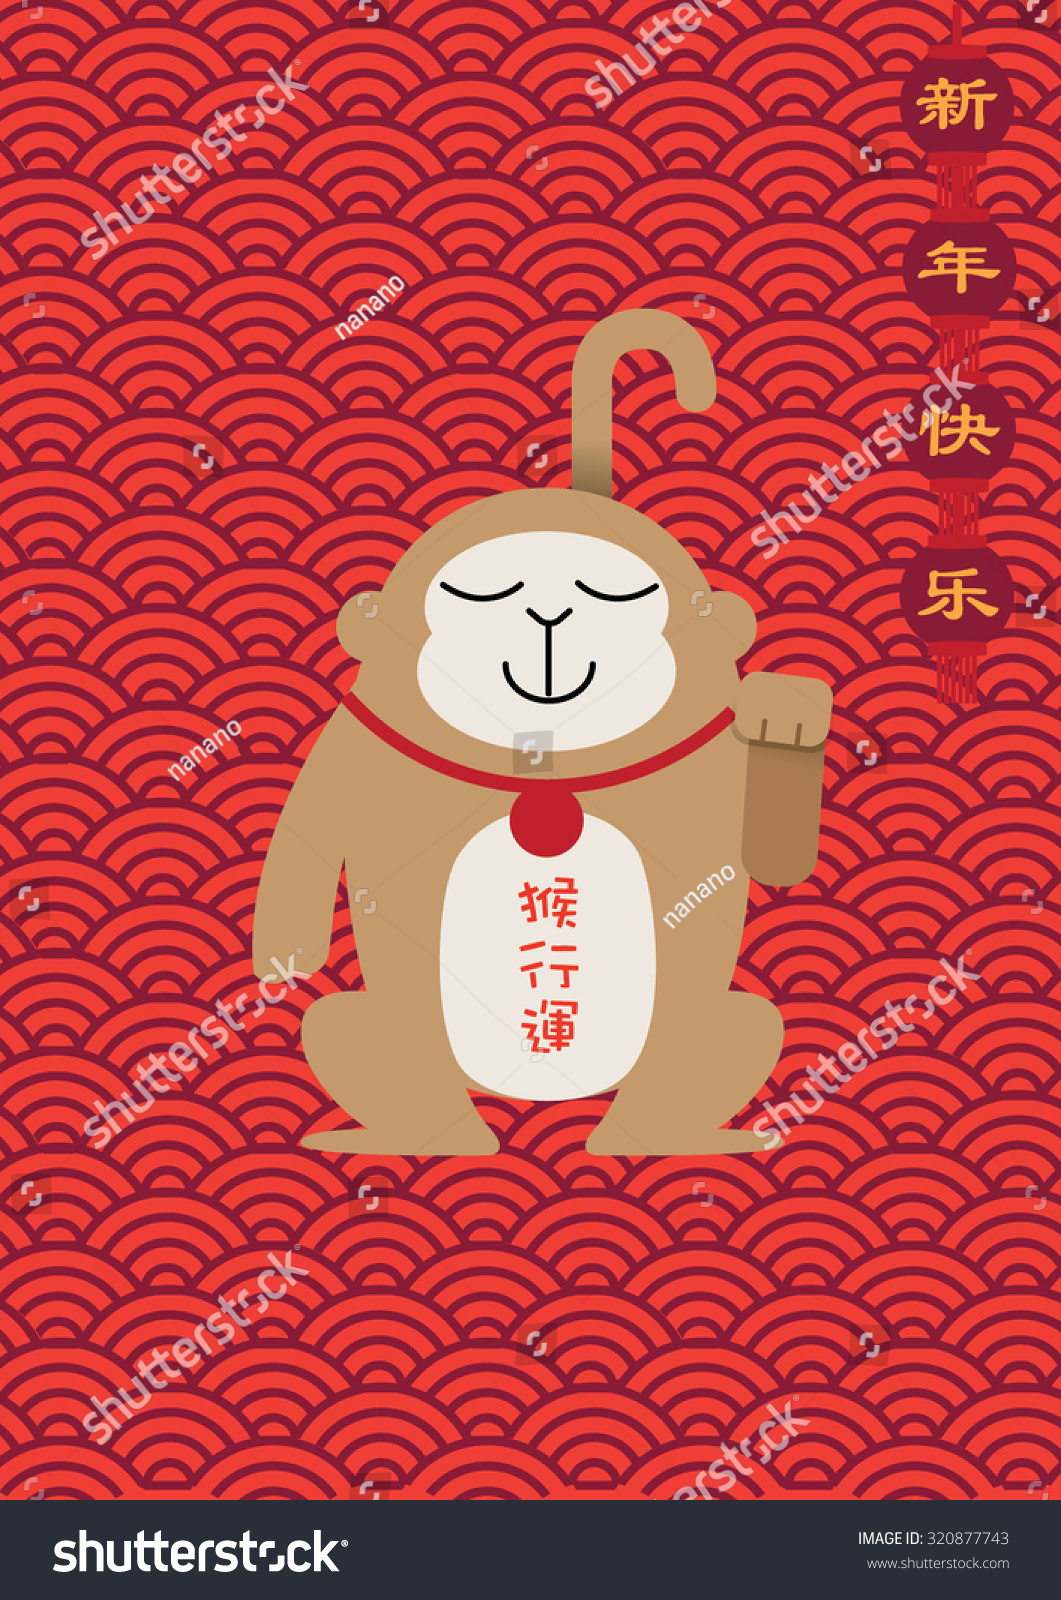 Fortune monkey good luck year monkey stock vector 320877743 fortune monkey good luck in the year of monkey chinese new year greetings kristyandbryce Image collections